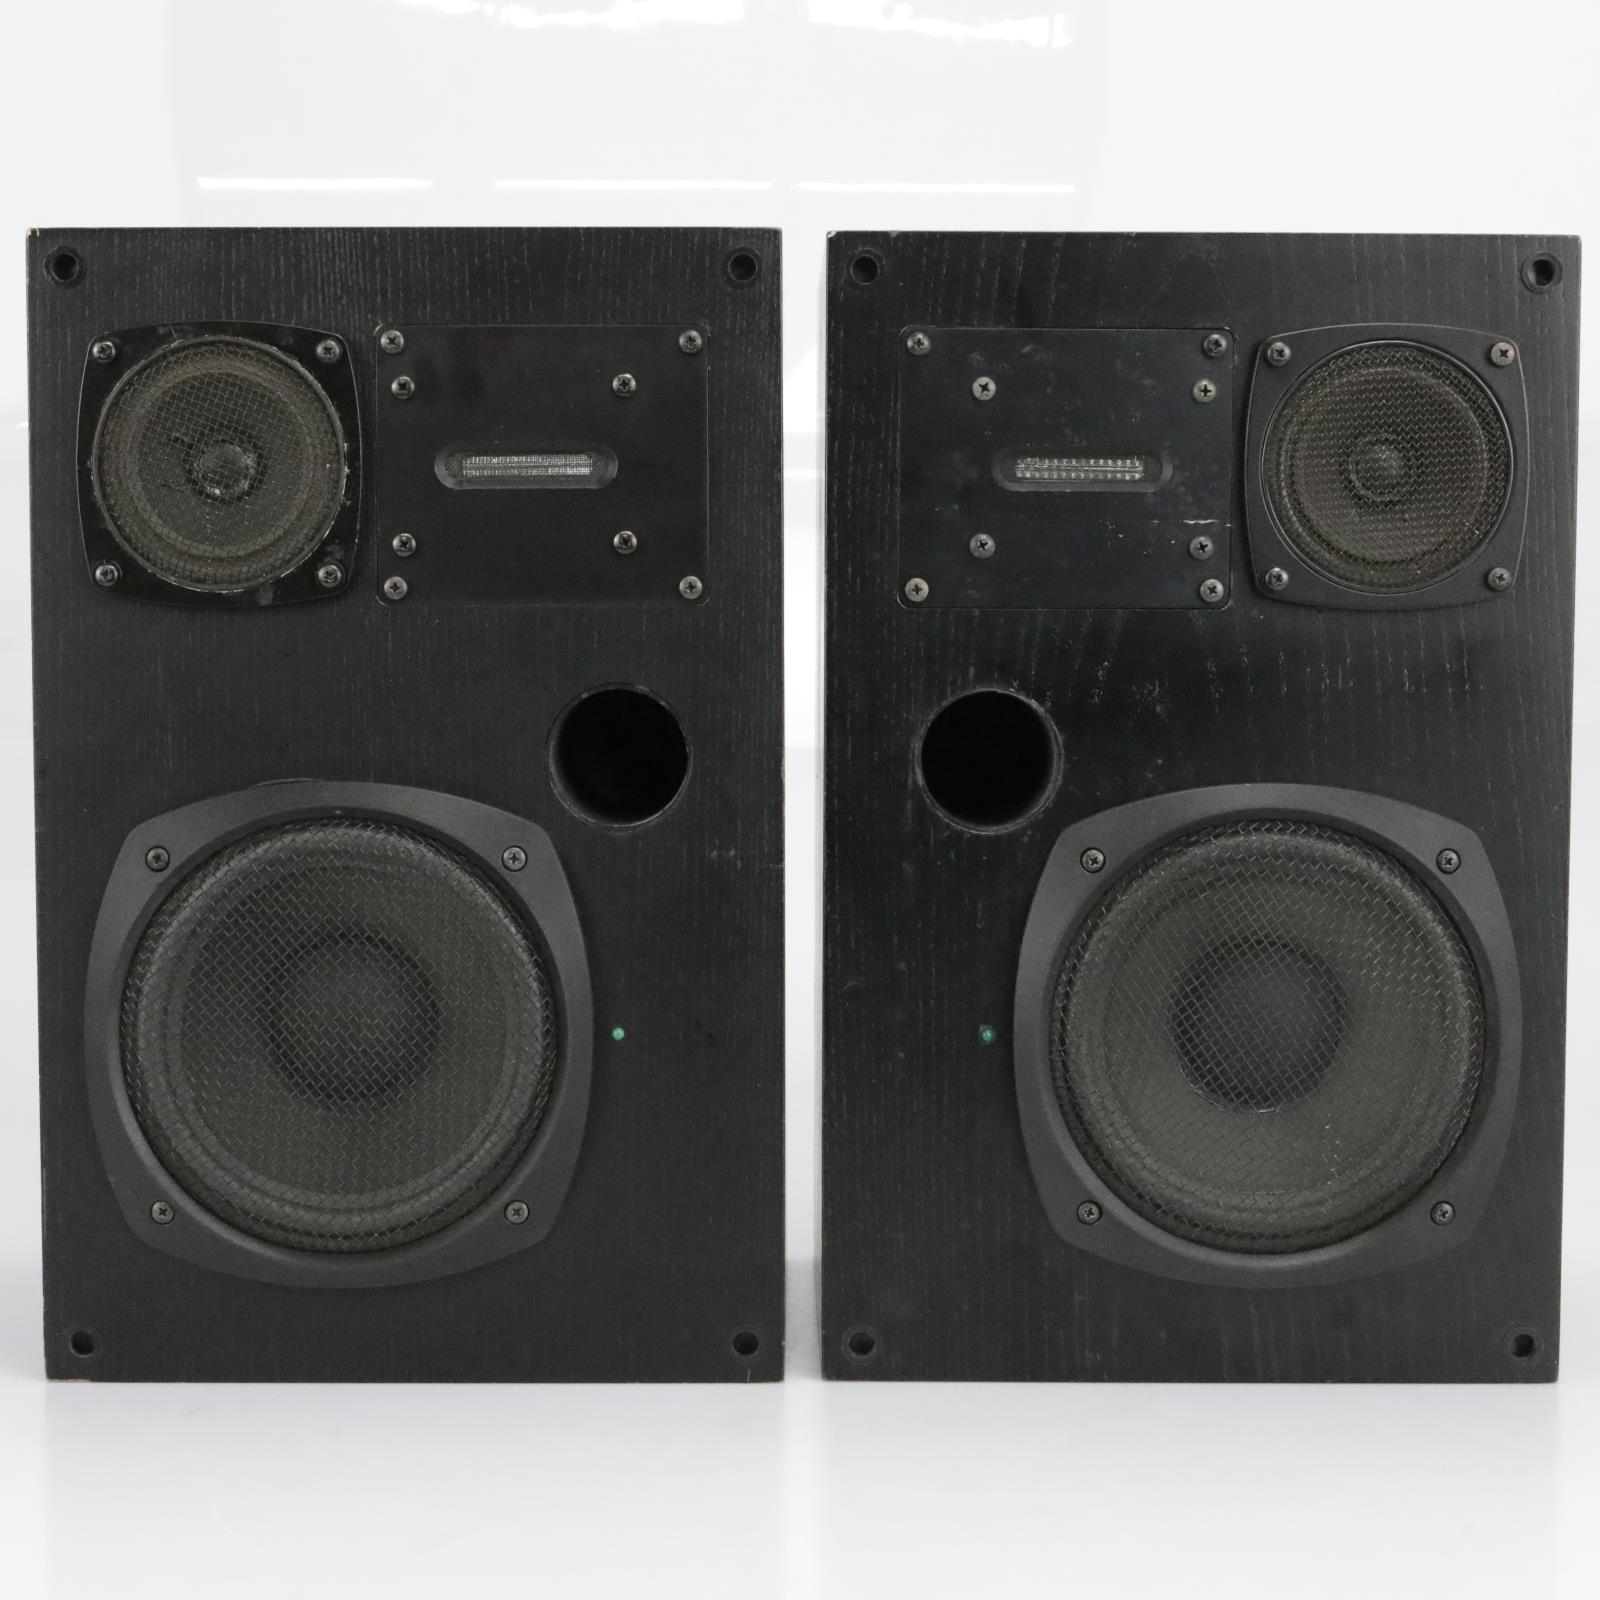 Genelec Triamp S30 NF Active Three-Way Studio Monitor Speakers S30NF #40318